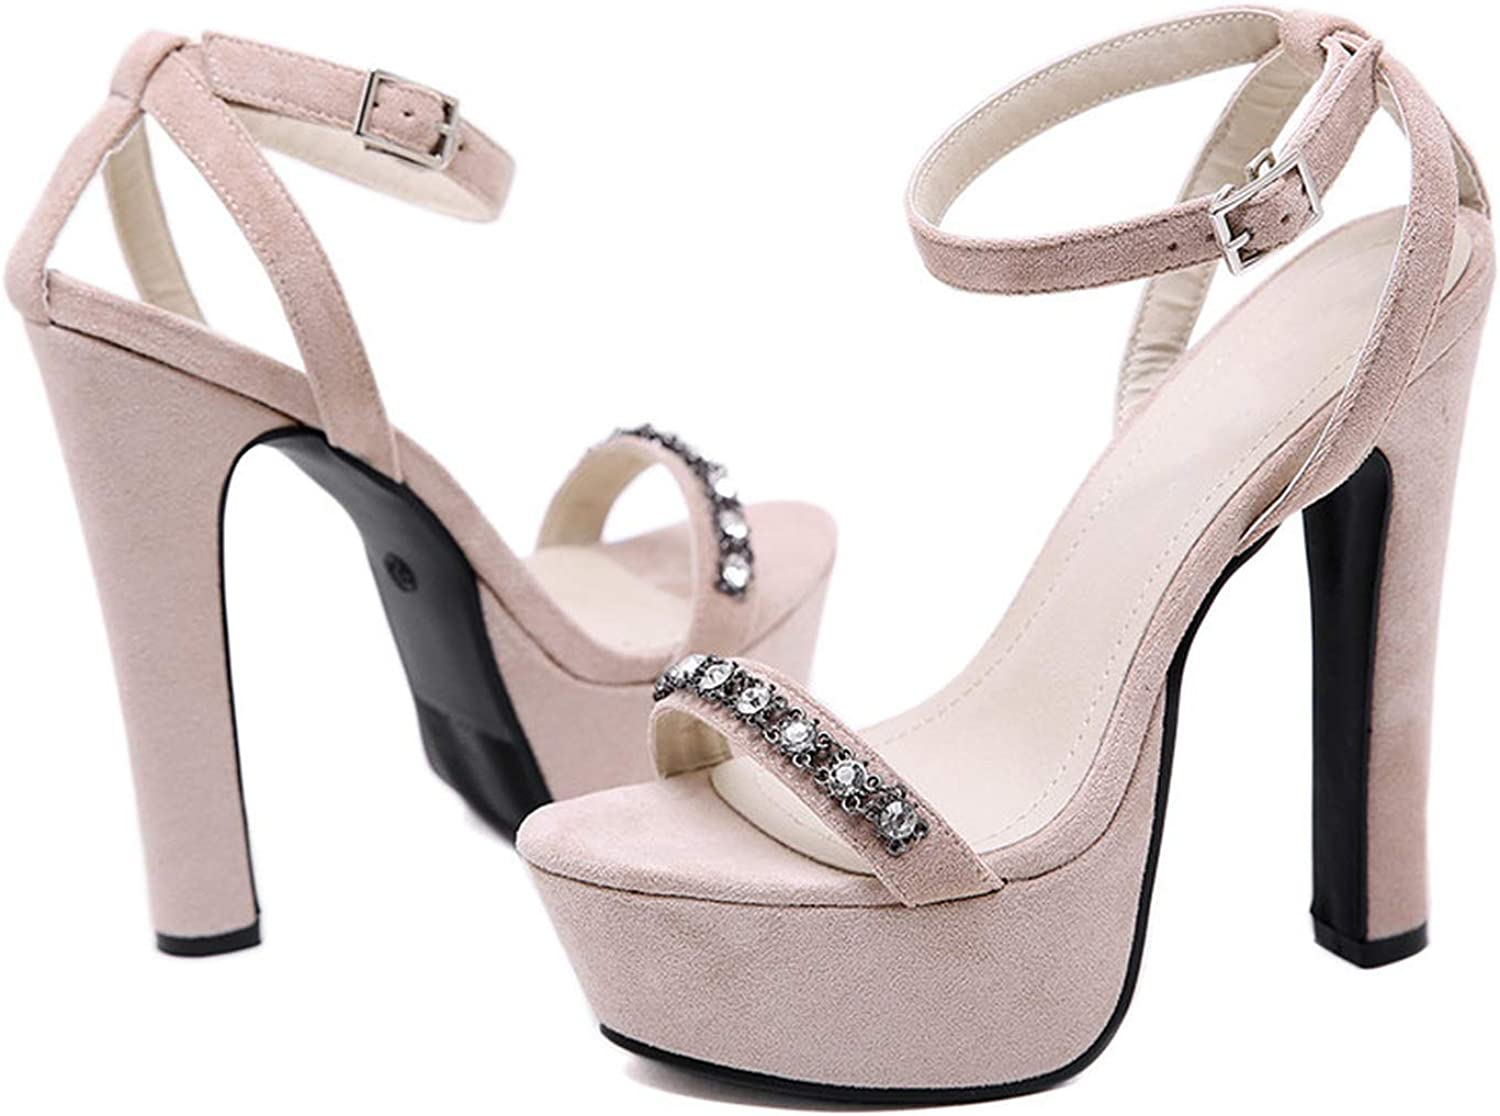 Heeled Sandals Sexy Super High Heels Ankle Strap Pumps Party Dress shoes